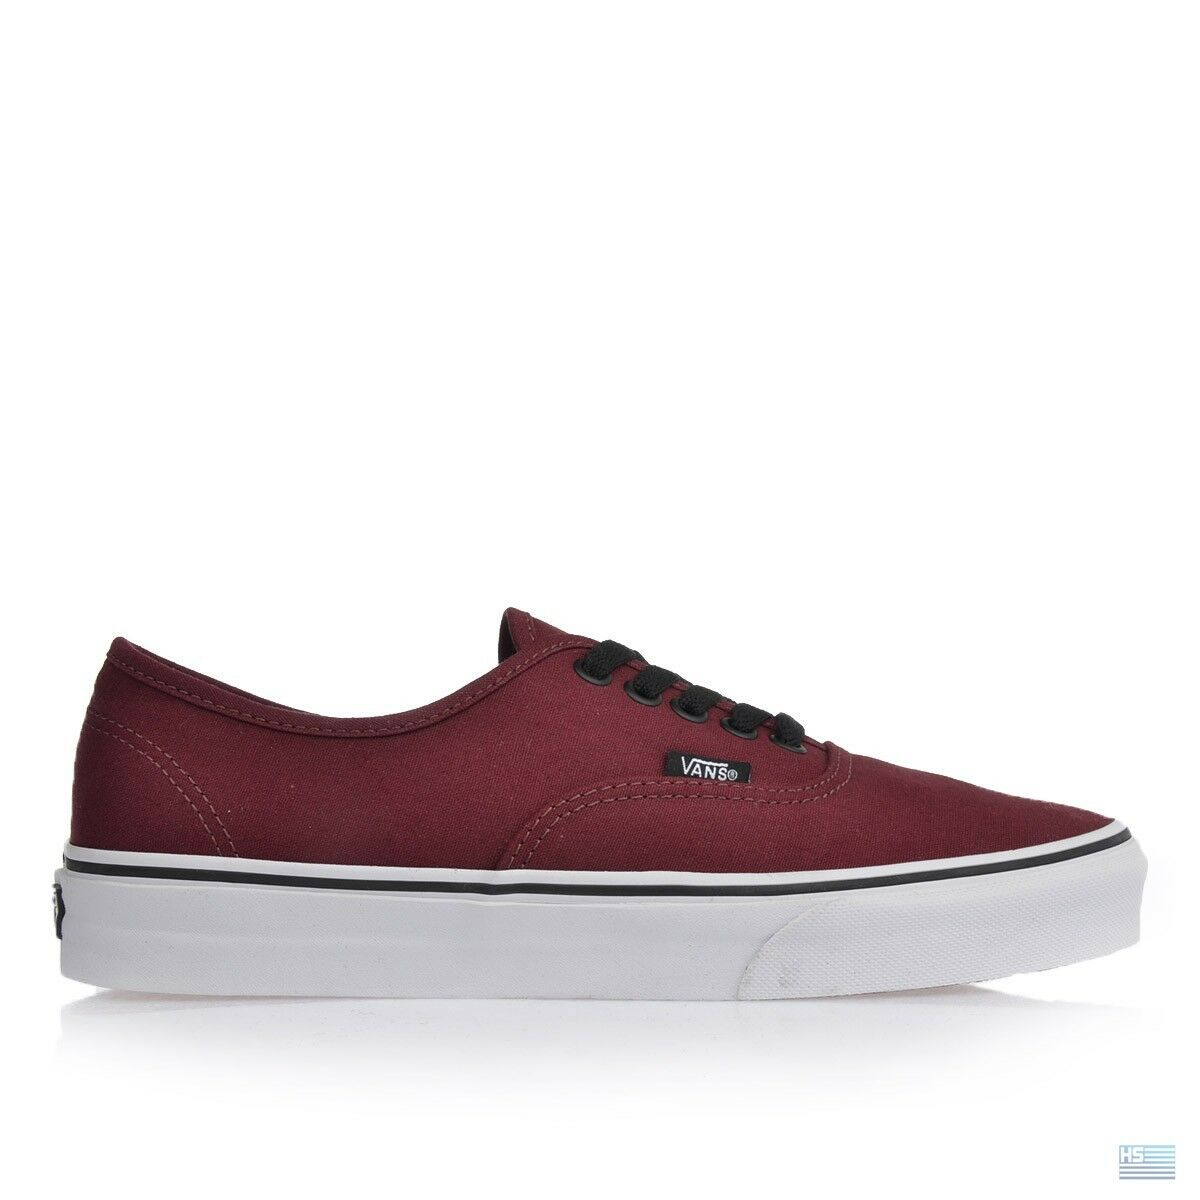 Vans AUTHENTIC BORDEAUX bordo ldquo bianco sneakers unisex tg. 36Tg. 46